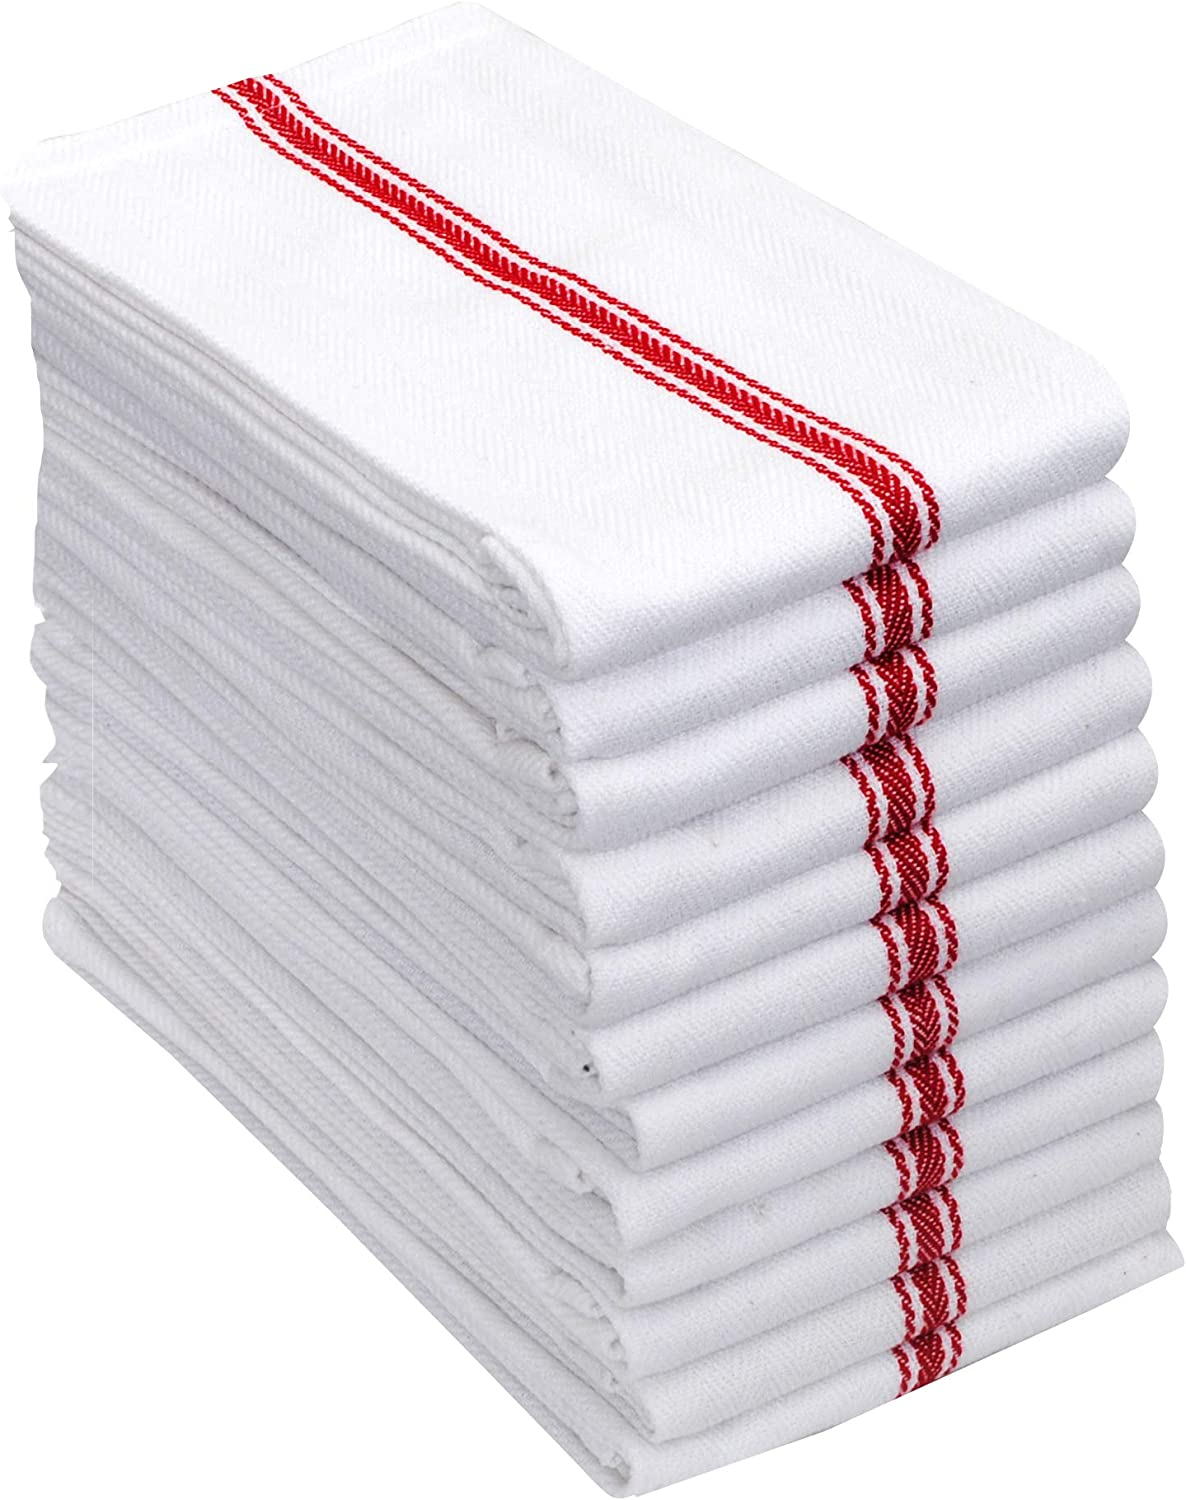 AMOUR INFINI Herringbone Weave Kitchen Towels | Set of 12 | 28 x 16 Inches | 100% Ring Spun Cotton Dish Towels | Ultra Soft and Absorbent | Perfect for Commercial Use and Bar Towels | Red